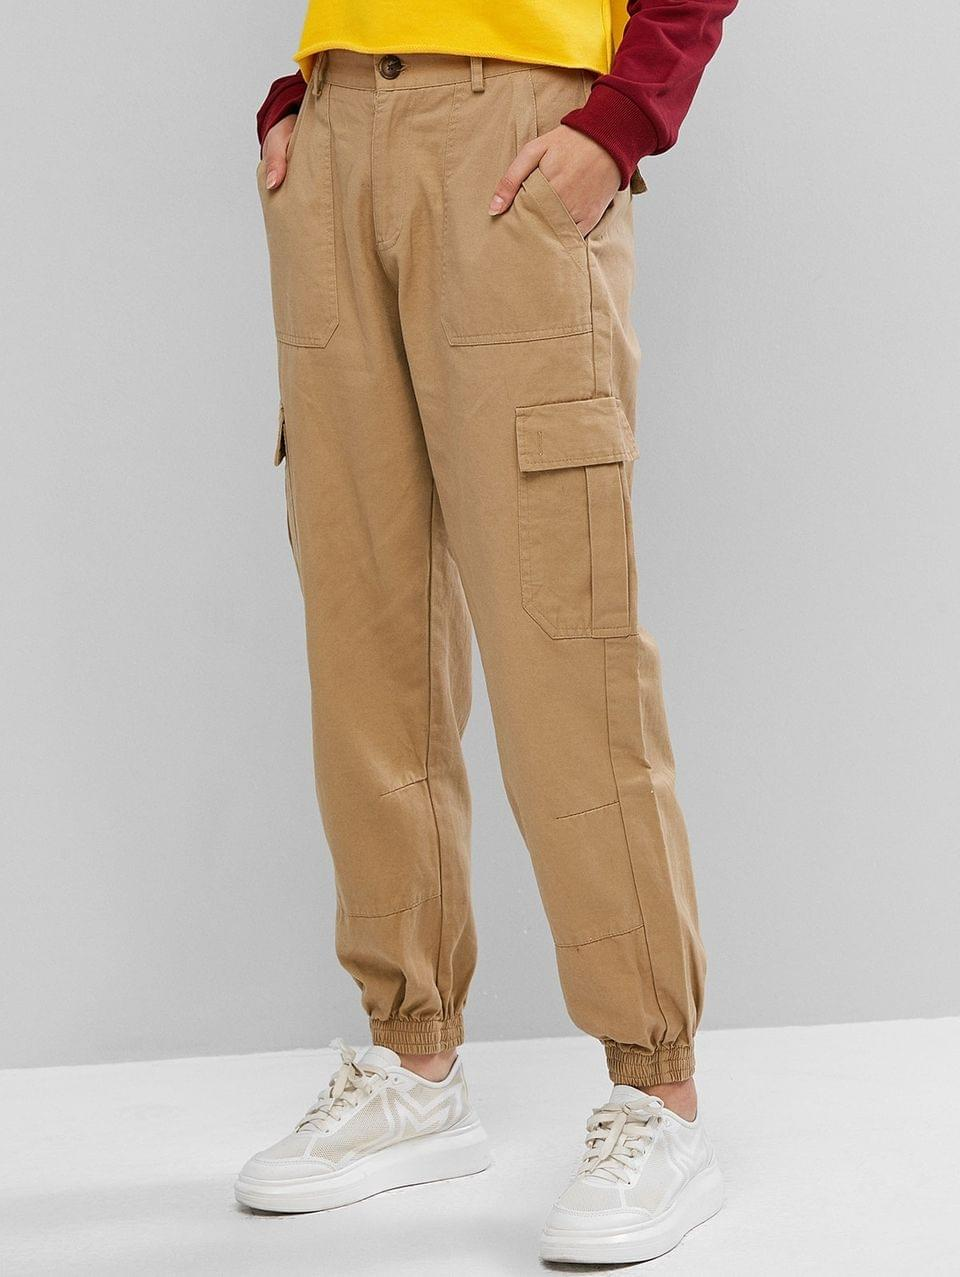 Women's High Waisted Buckle Flap Pockets Jogger Pants - Light Khaki S